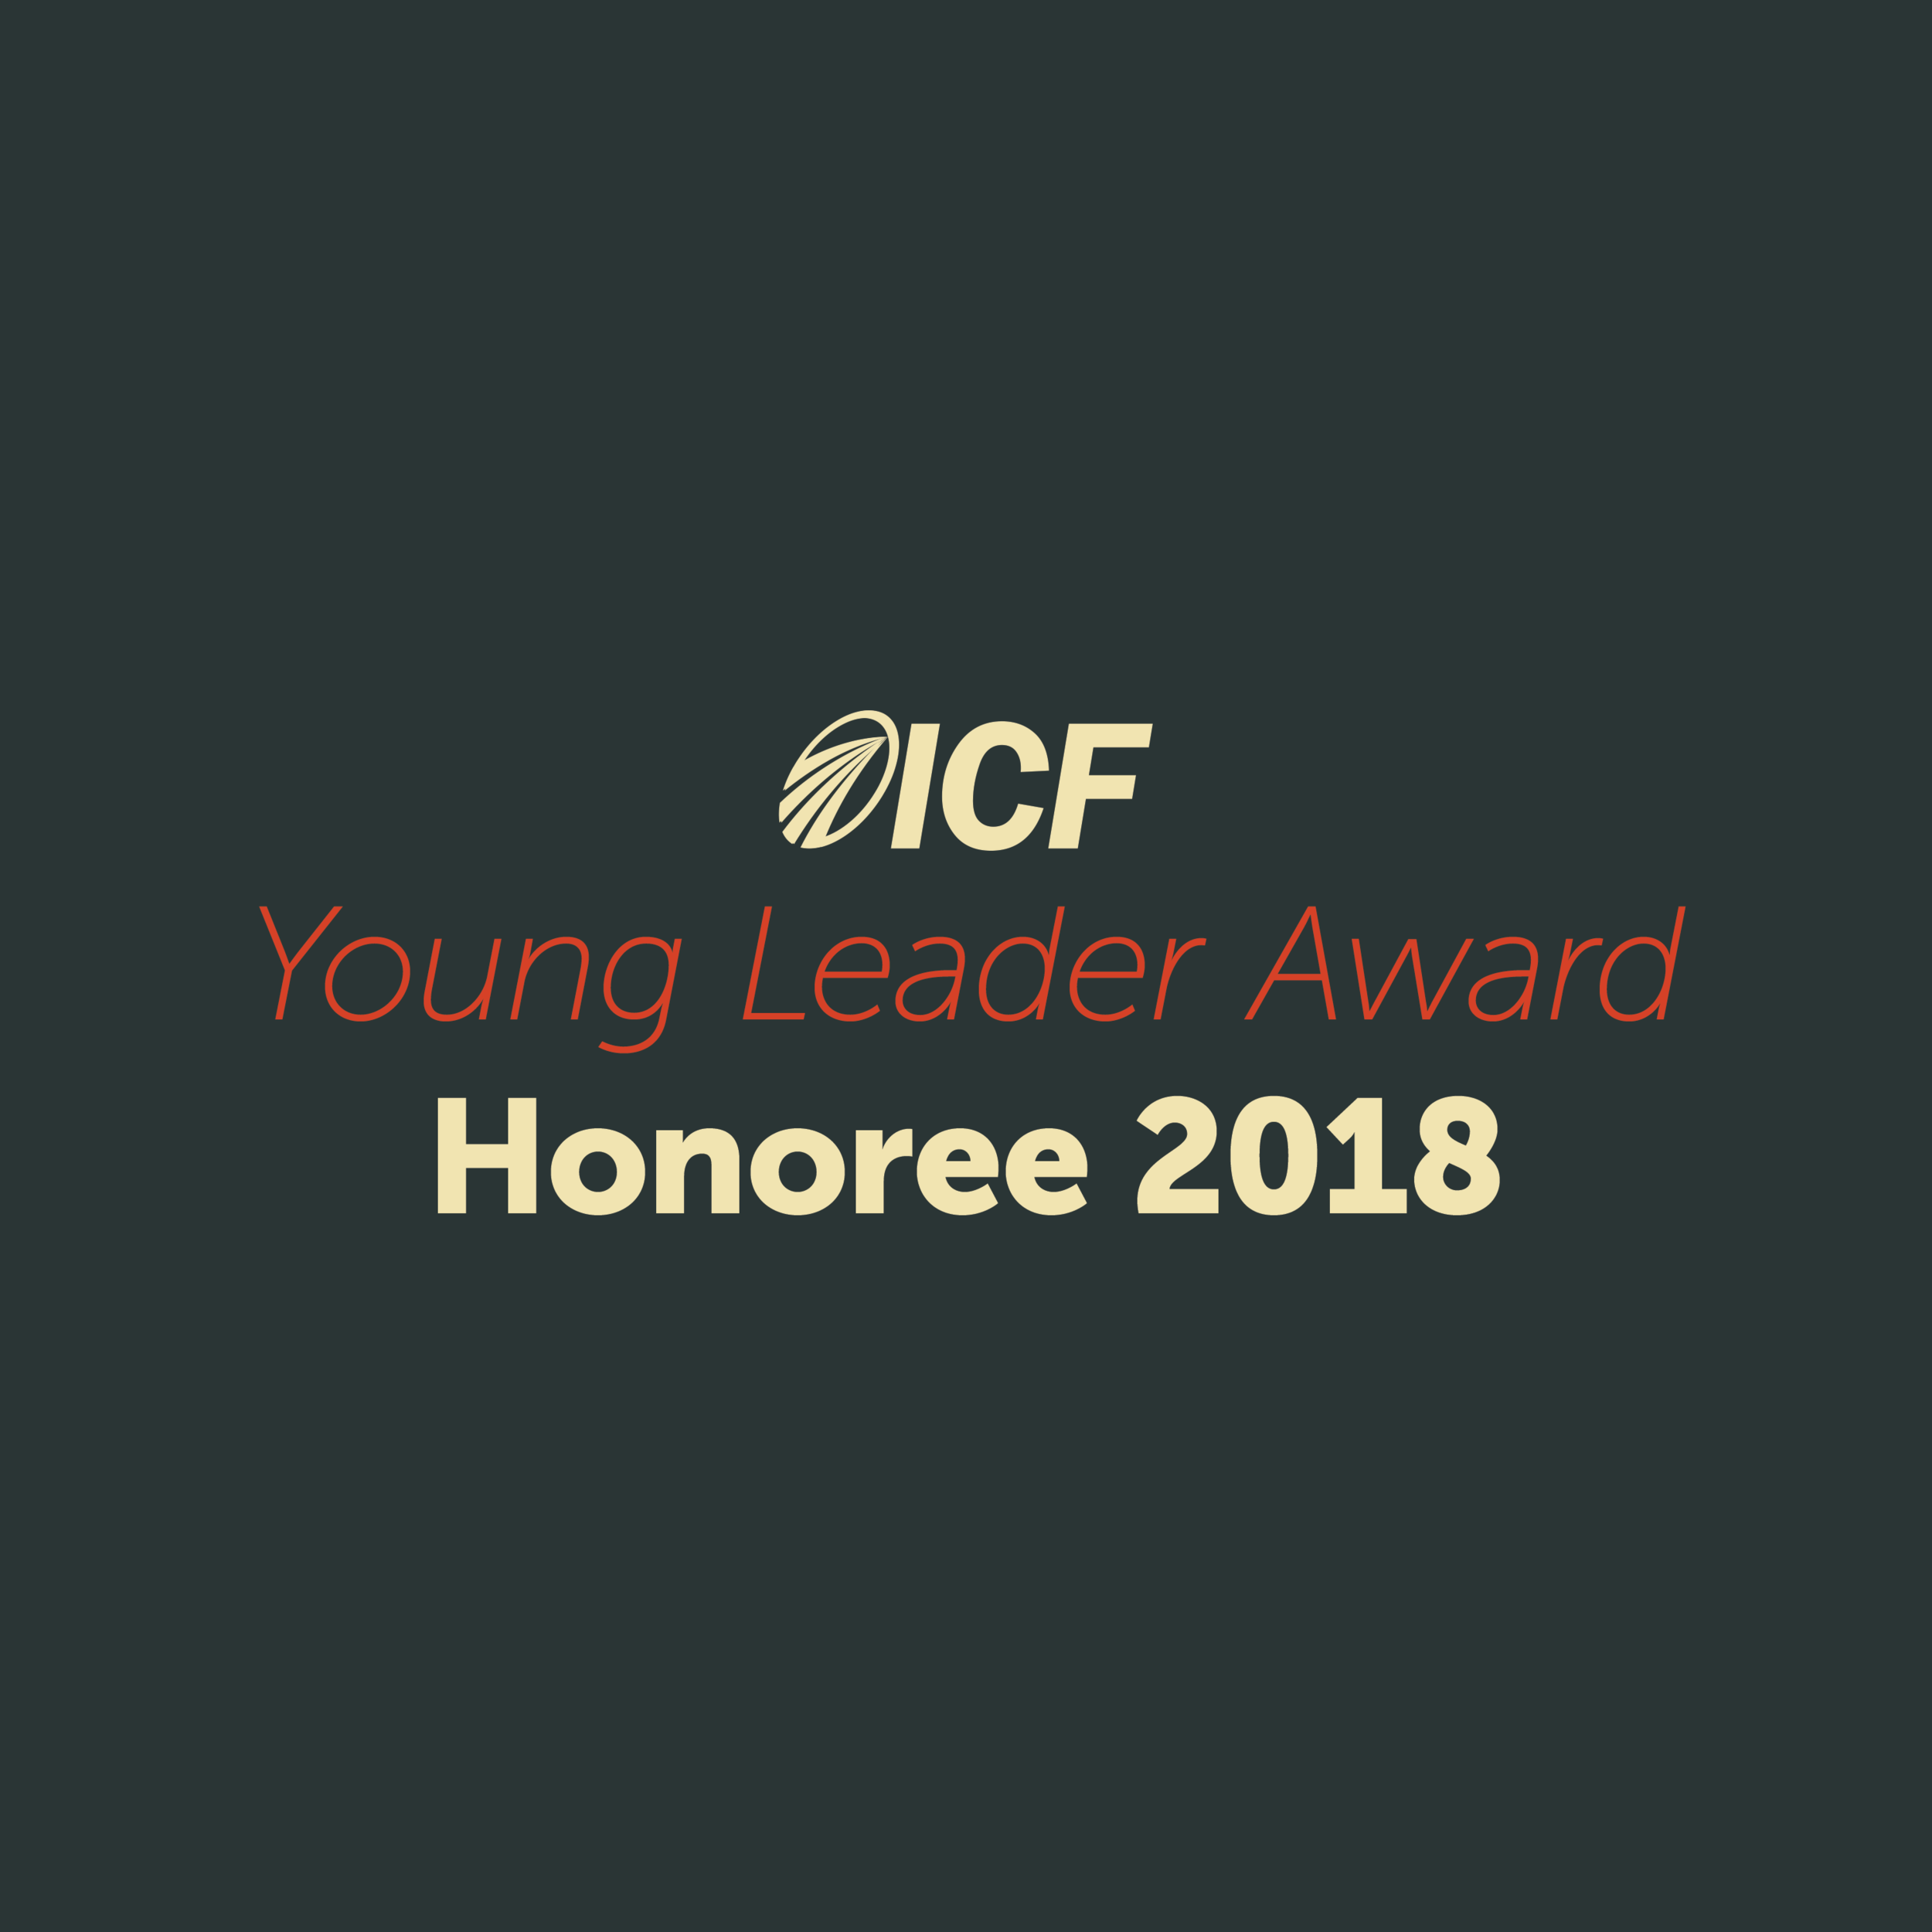 I was chosen as one of the first Young Coach Leaders out of ICF's 33,000 global members. I was the only North American coach who received the honor, which is awarded to coaches under 40 years old.